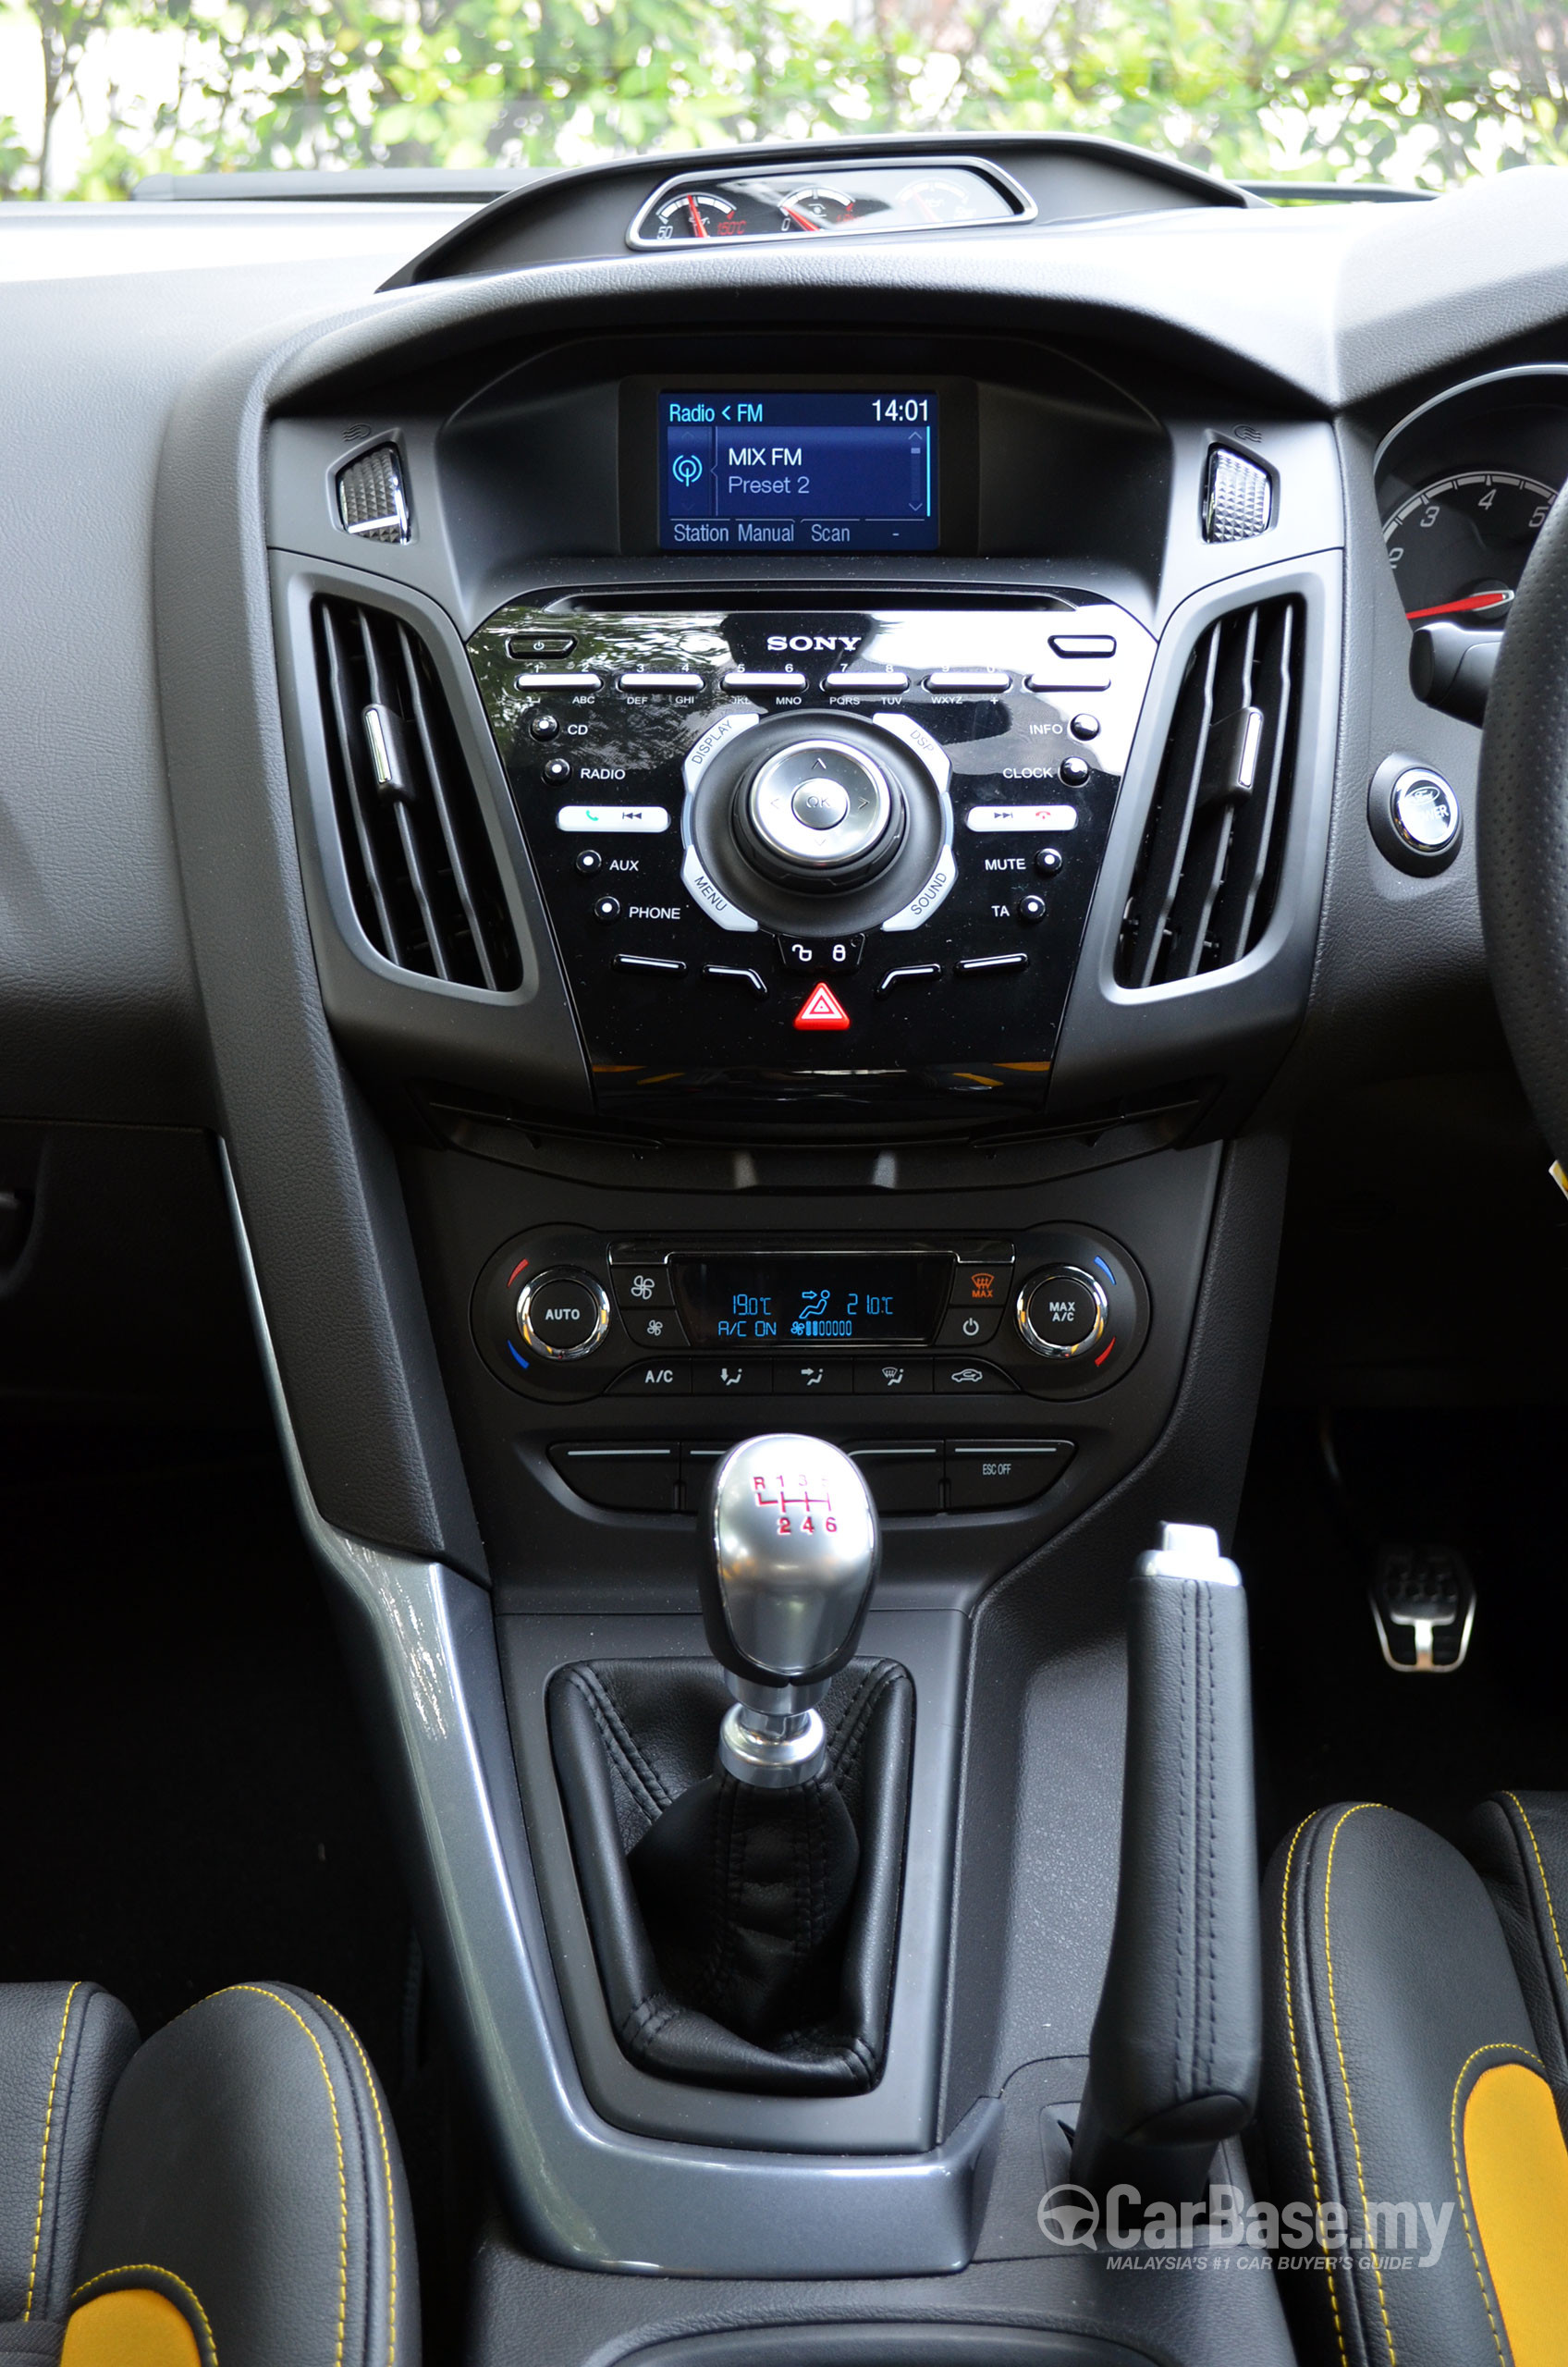 Ford Focus St Mk3 C346 2012 Interior Image In Malaysia Reviews